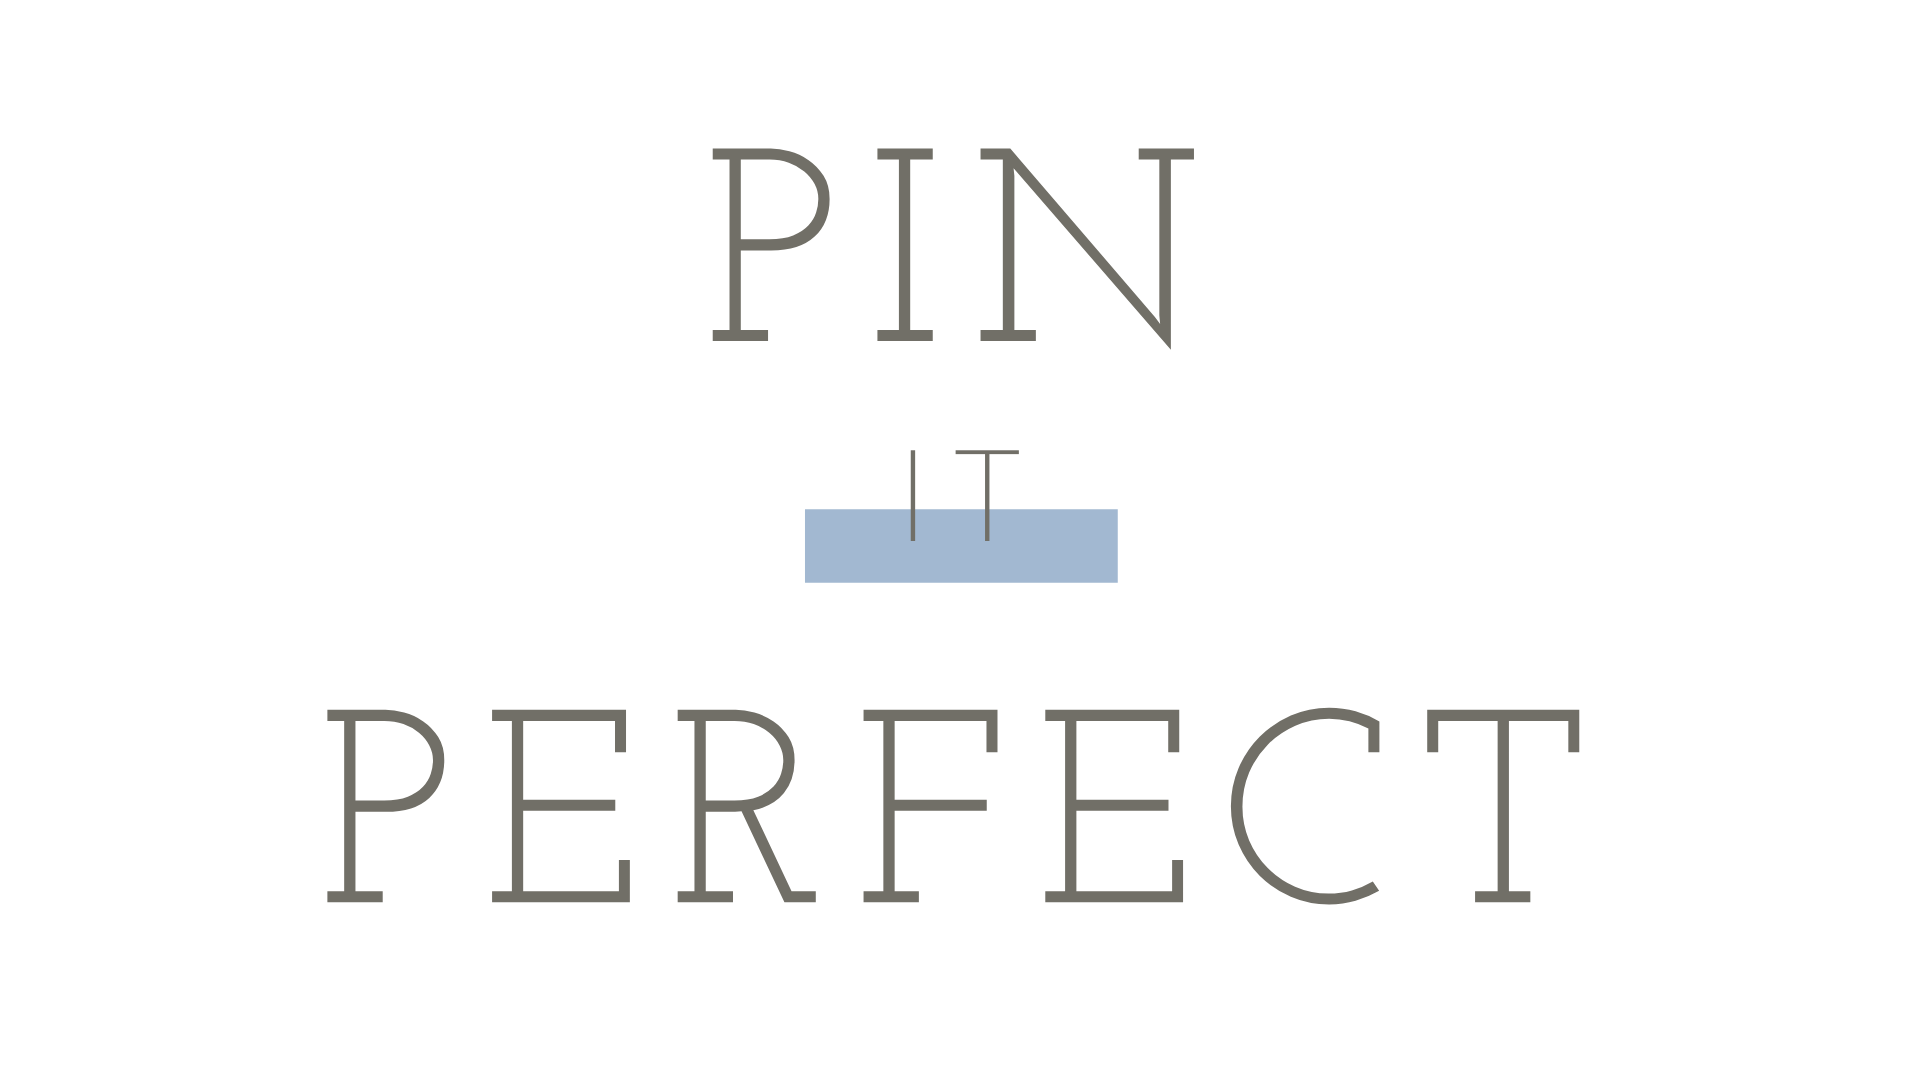 The complete Pinterest course. - Already run a blog, online shop, or are part of a network marketing company? Pin it Perfect is definitely for you. It teaches the Pinterest skills that took my blog from making $30,000 per year to making $400,000 per year in a matter of weeks. Yes you heard that right this course transformed my blog in weeks. Plus get the course for $19 (which is $6 off) with the code: HOME at checkout.